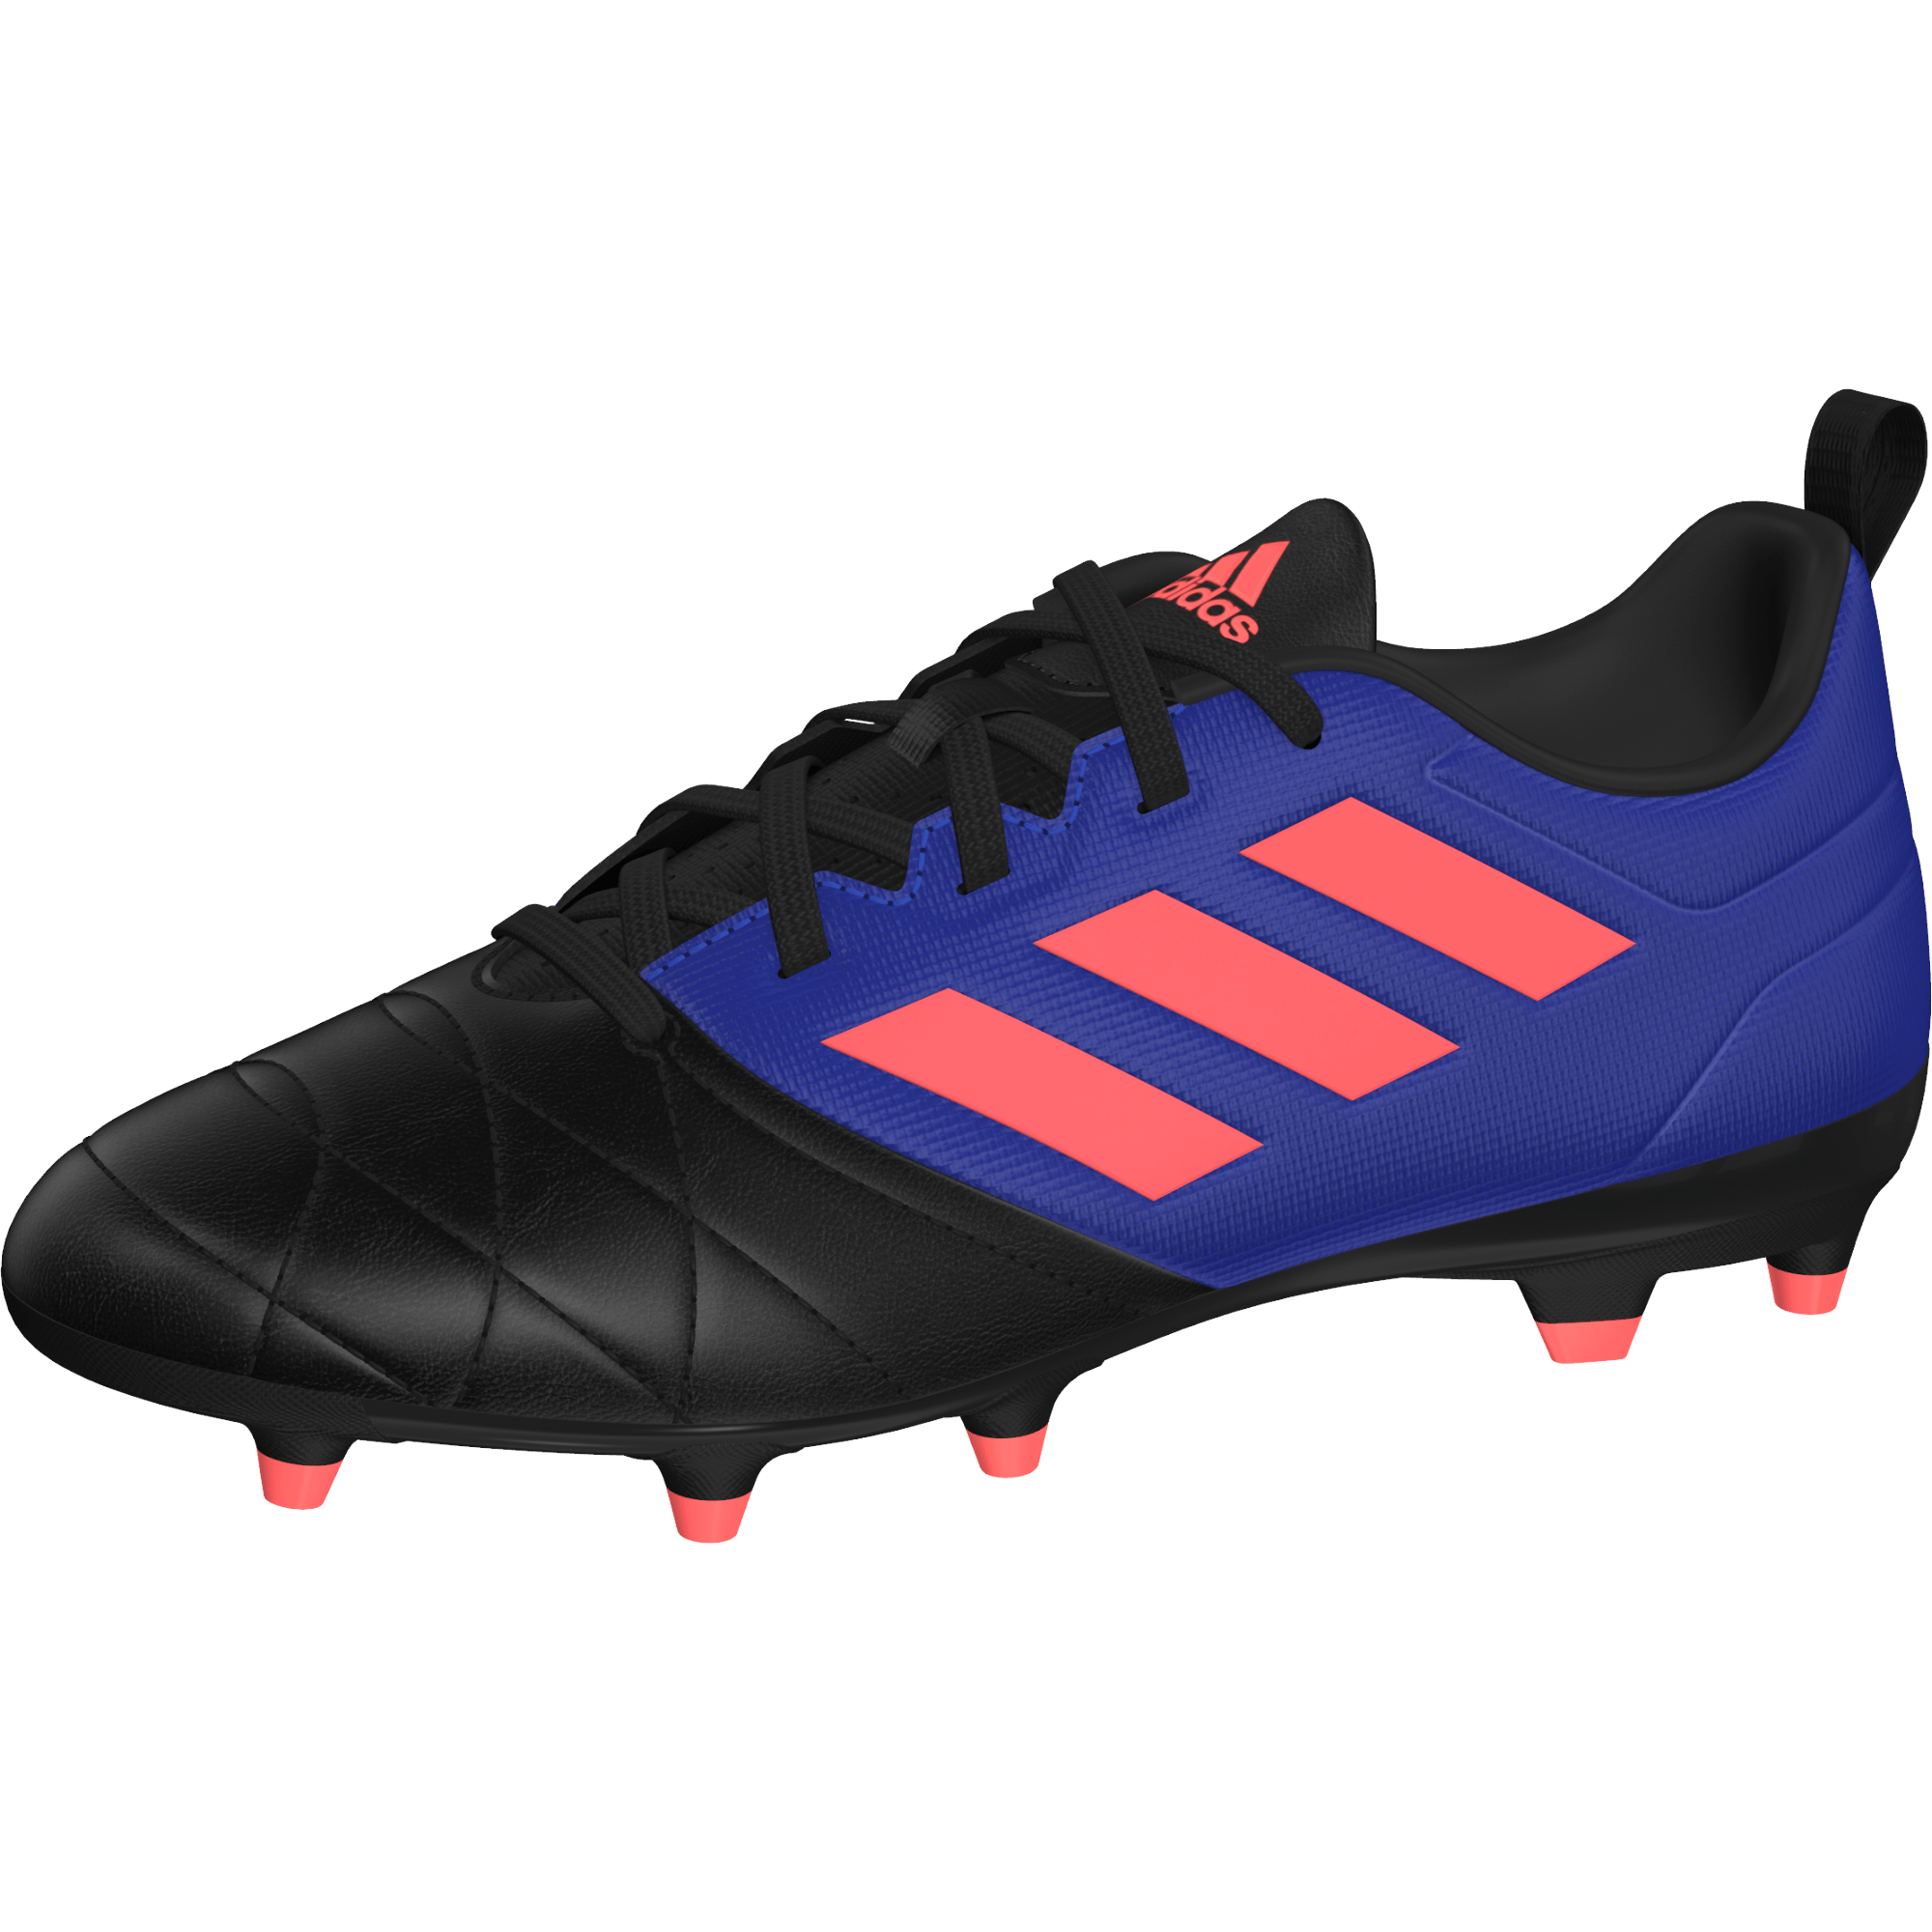 bbd2d015c88 ... 17.2 fg mens boots firm ground s77056 core black utility black fcca3  68918  coupon adidas ace 17.3 firm ground boot women mystery ink f17 easy  coral s17 ...